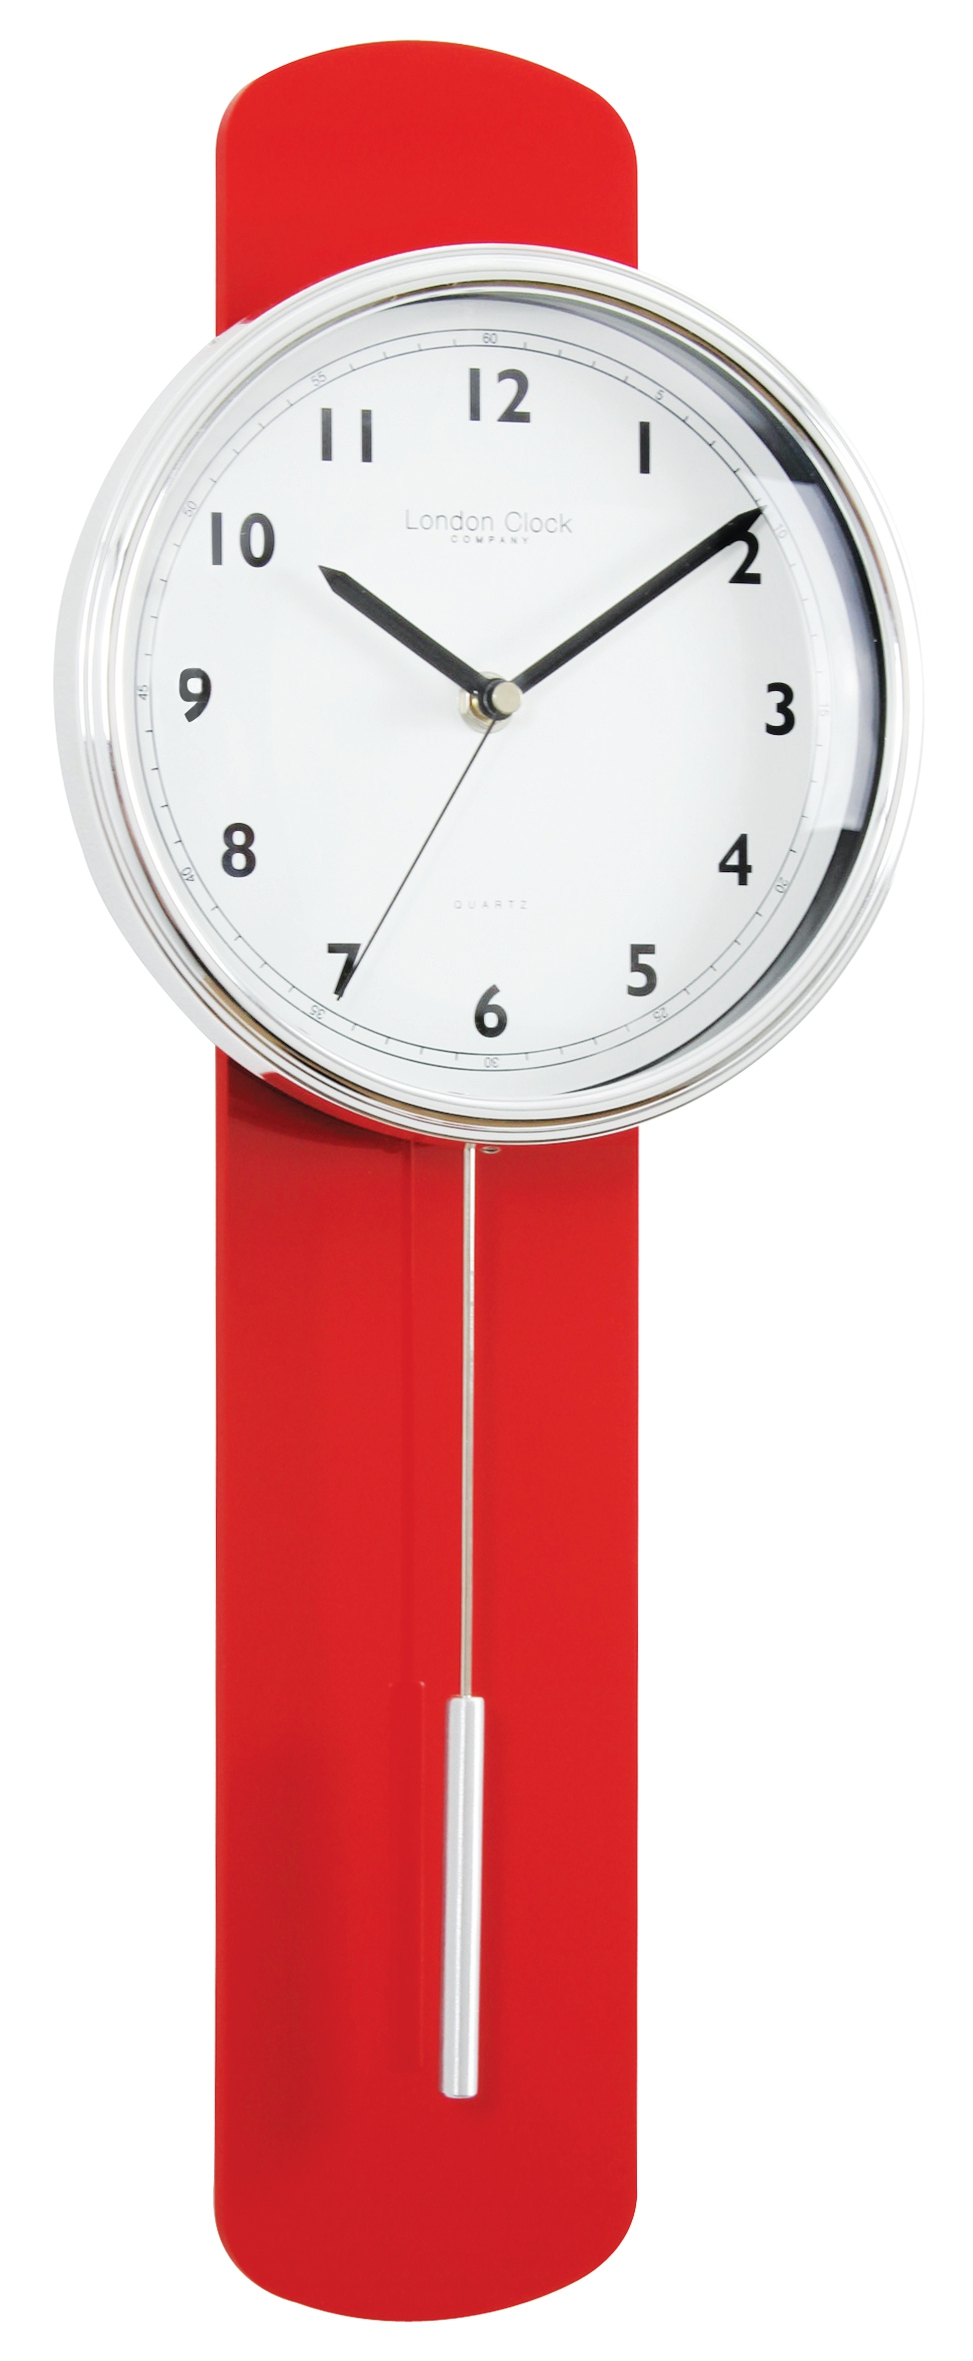 London clock company red finish contemporary pendulum wall clock discount homeware and giftware - Contemporary wall clocks with pendulum ...